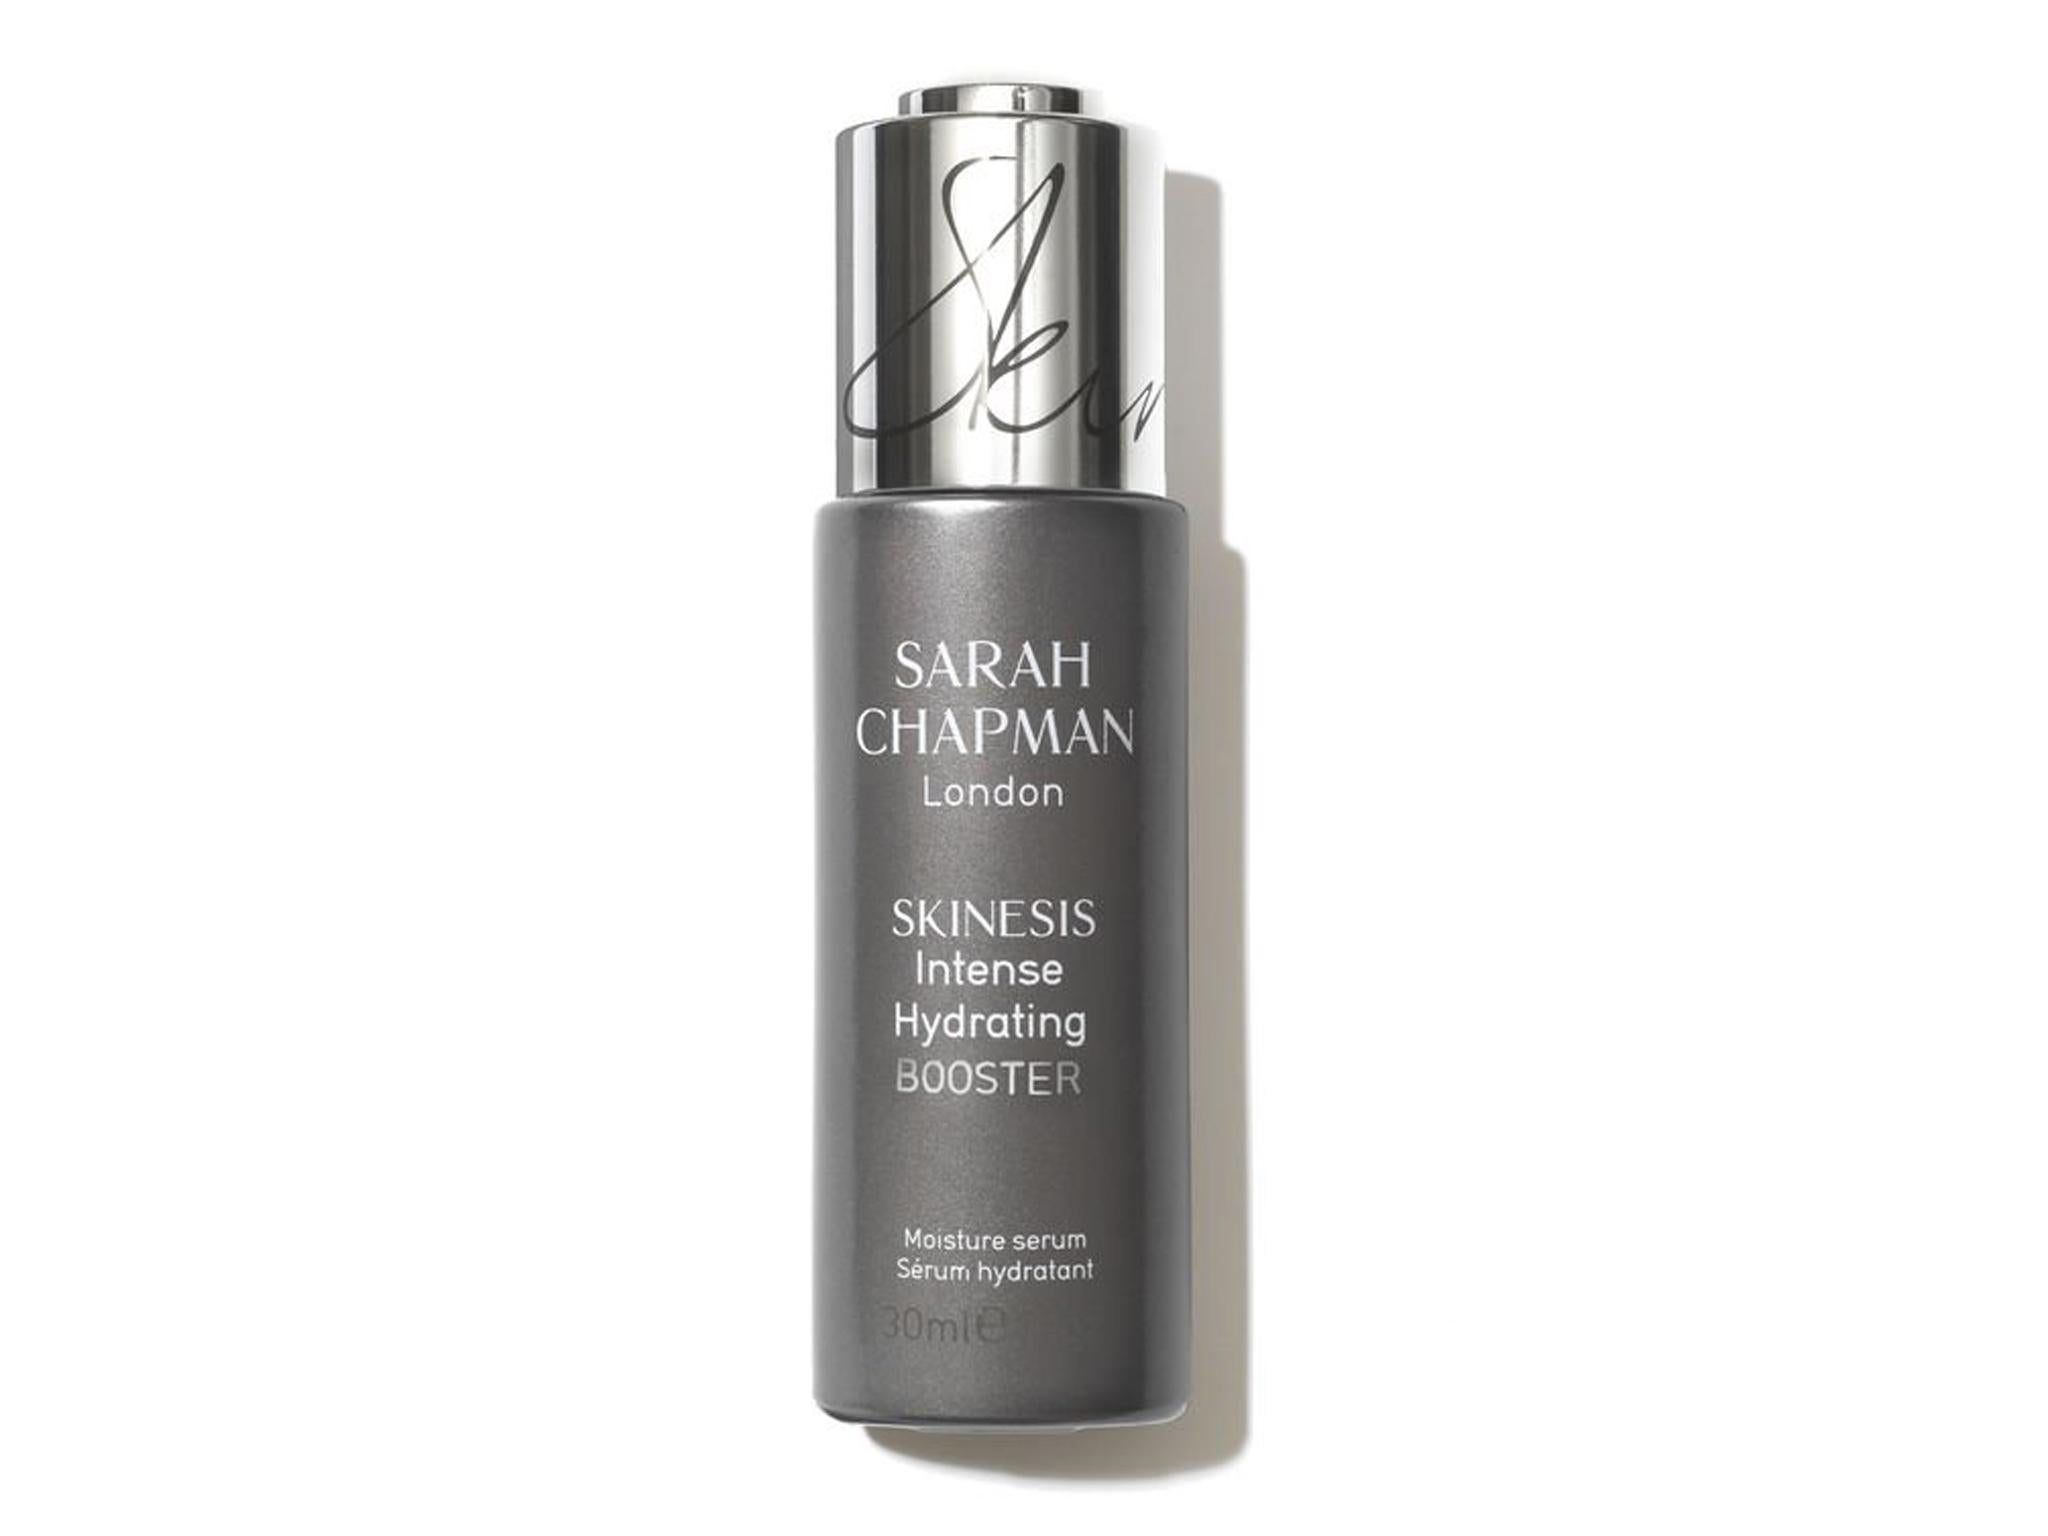 Best hyaluronic acid products: Serums, creams and sprays